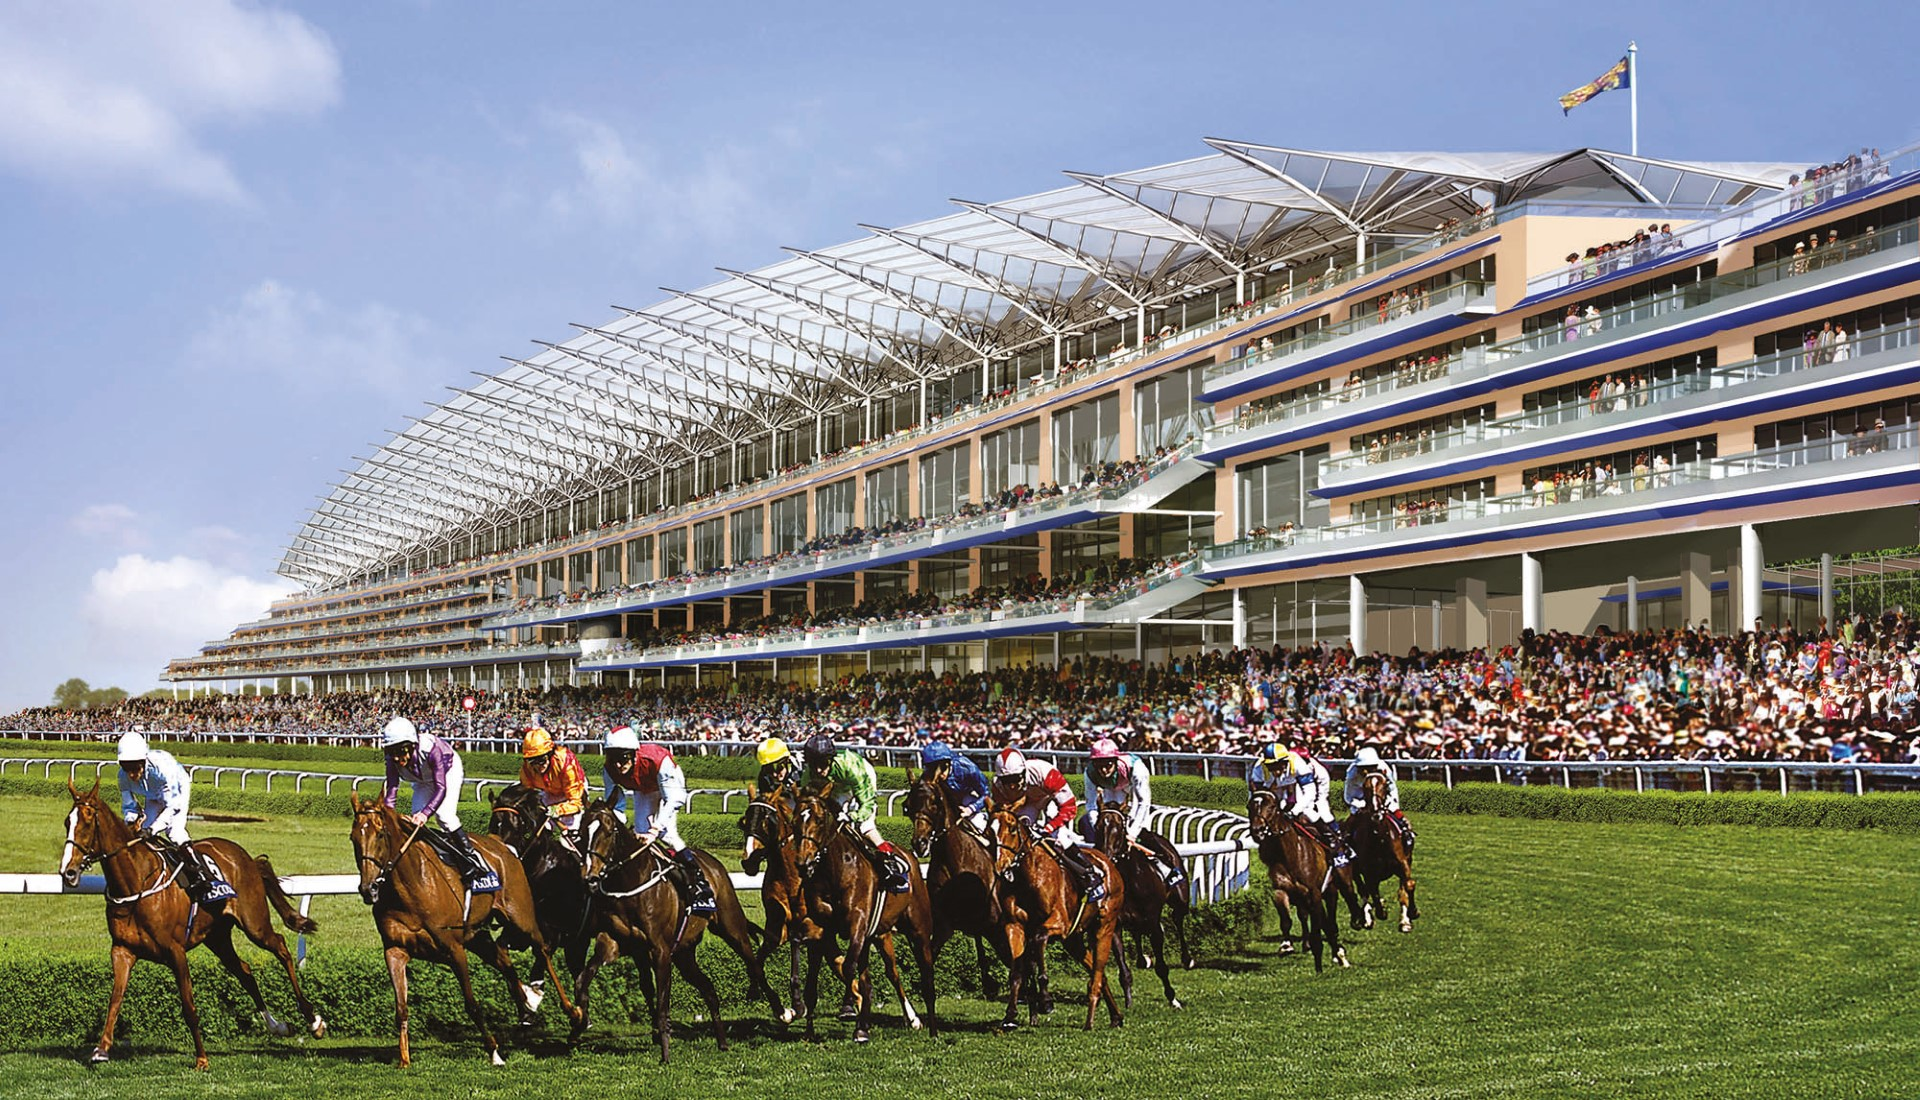 Royal Ascot Races 2021